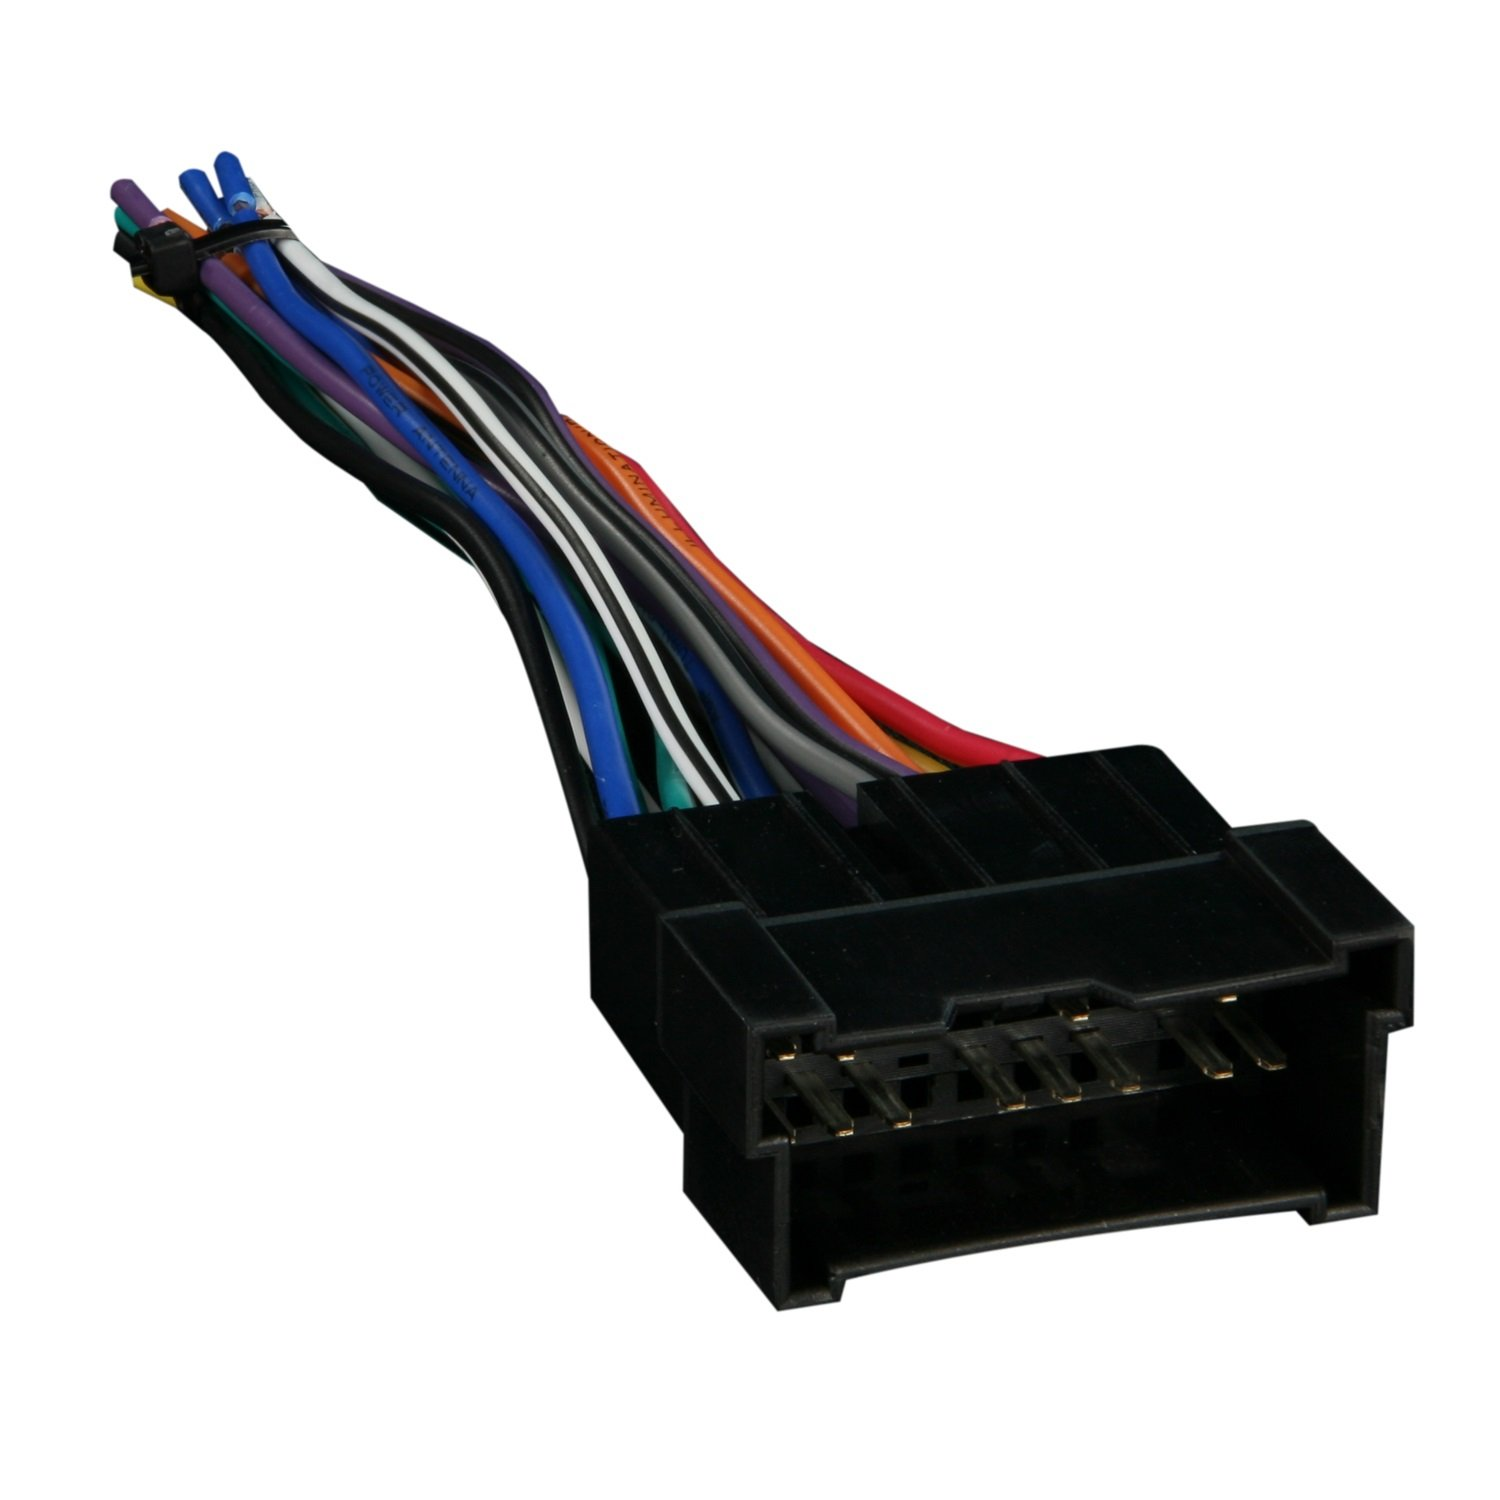 617yeBmOquL._SL1500_ amazon com metra 70 7301 radio wiring harness for hyundai kia 99 hyundai wiring harness repair kit at alyssarenee.co